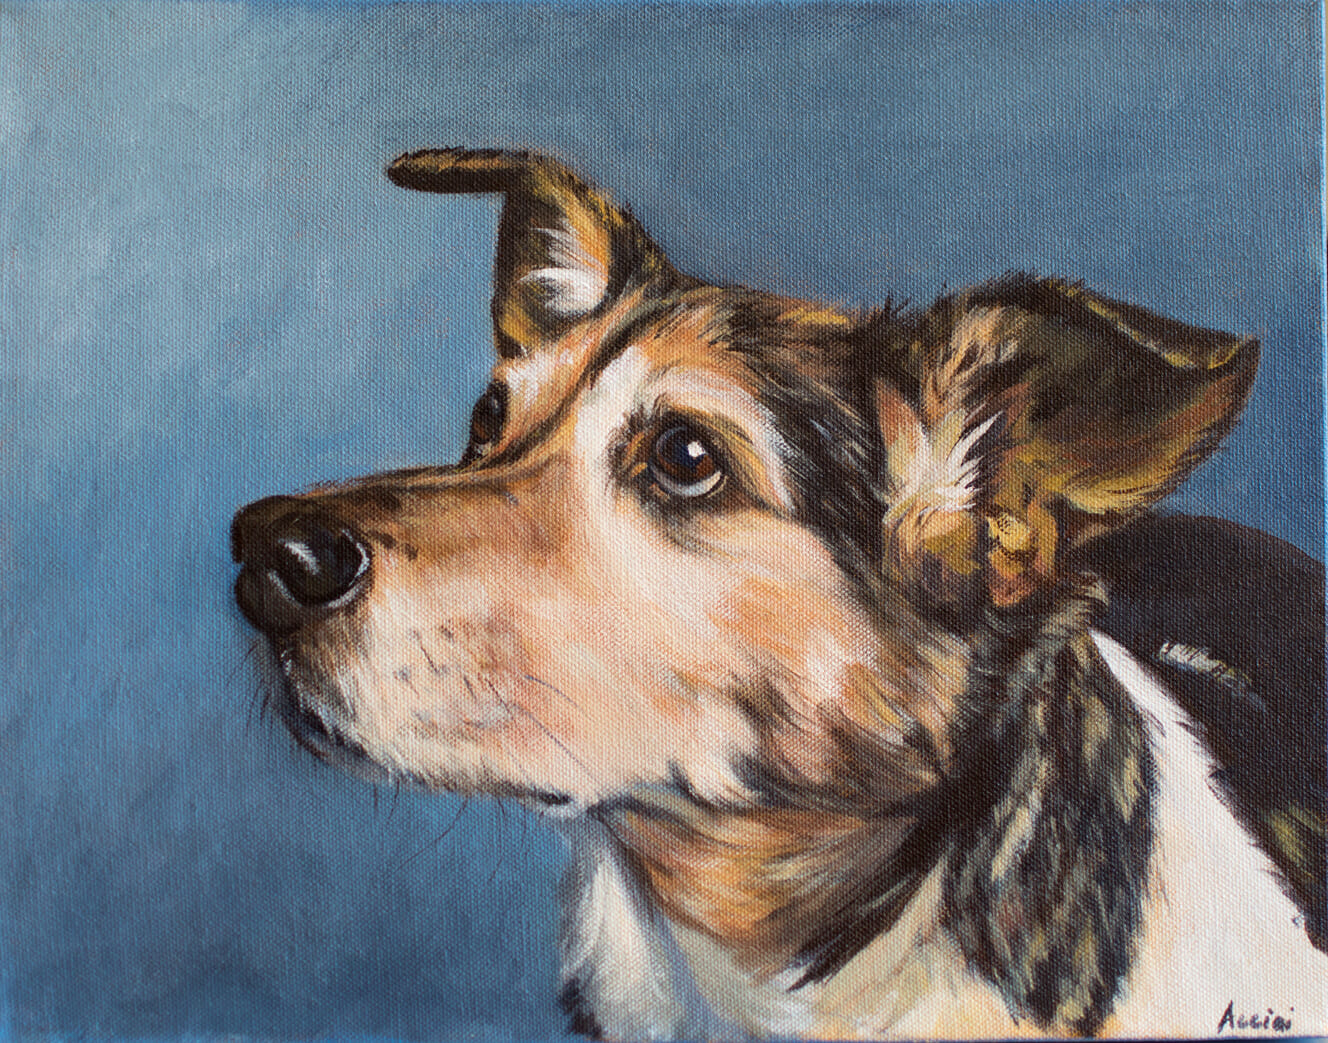 Beagle by Lisa Acciai of LAcStudio